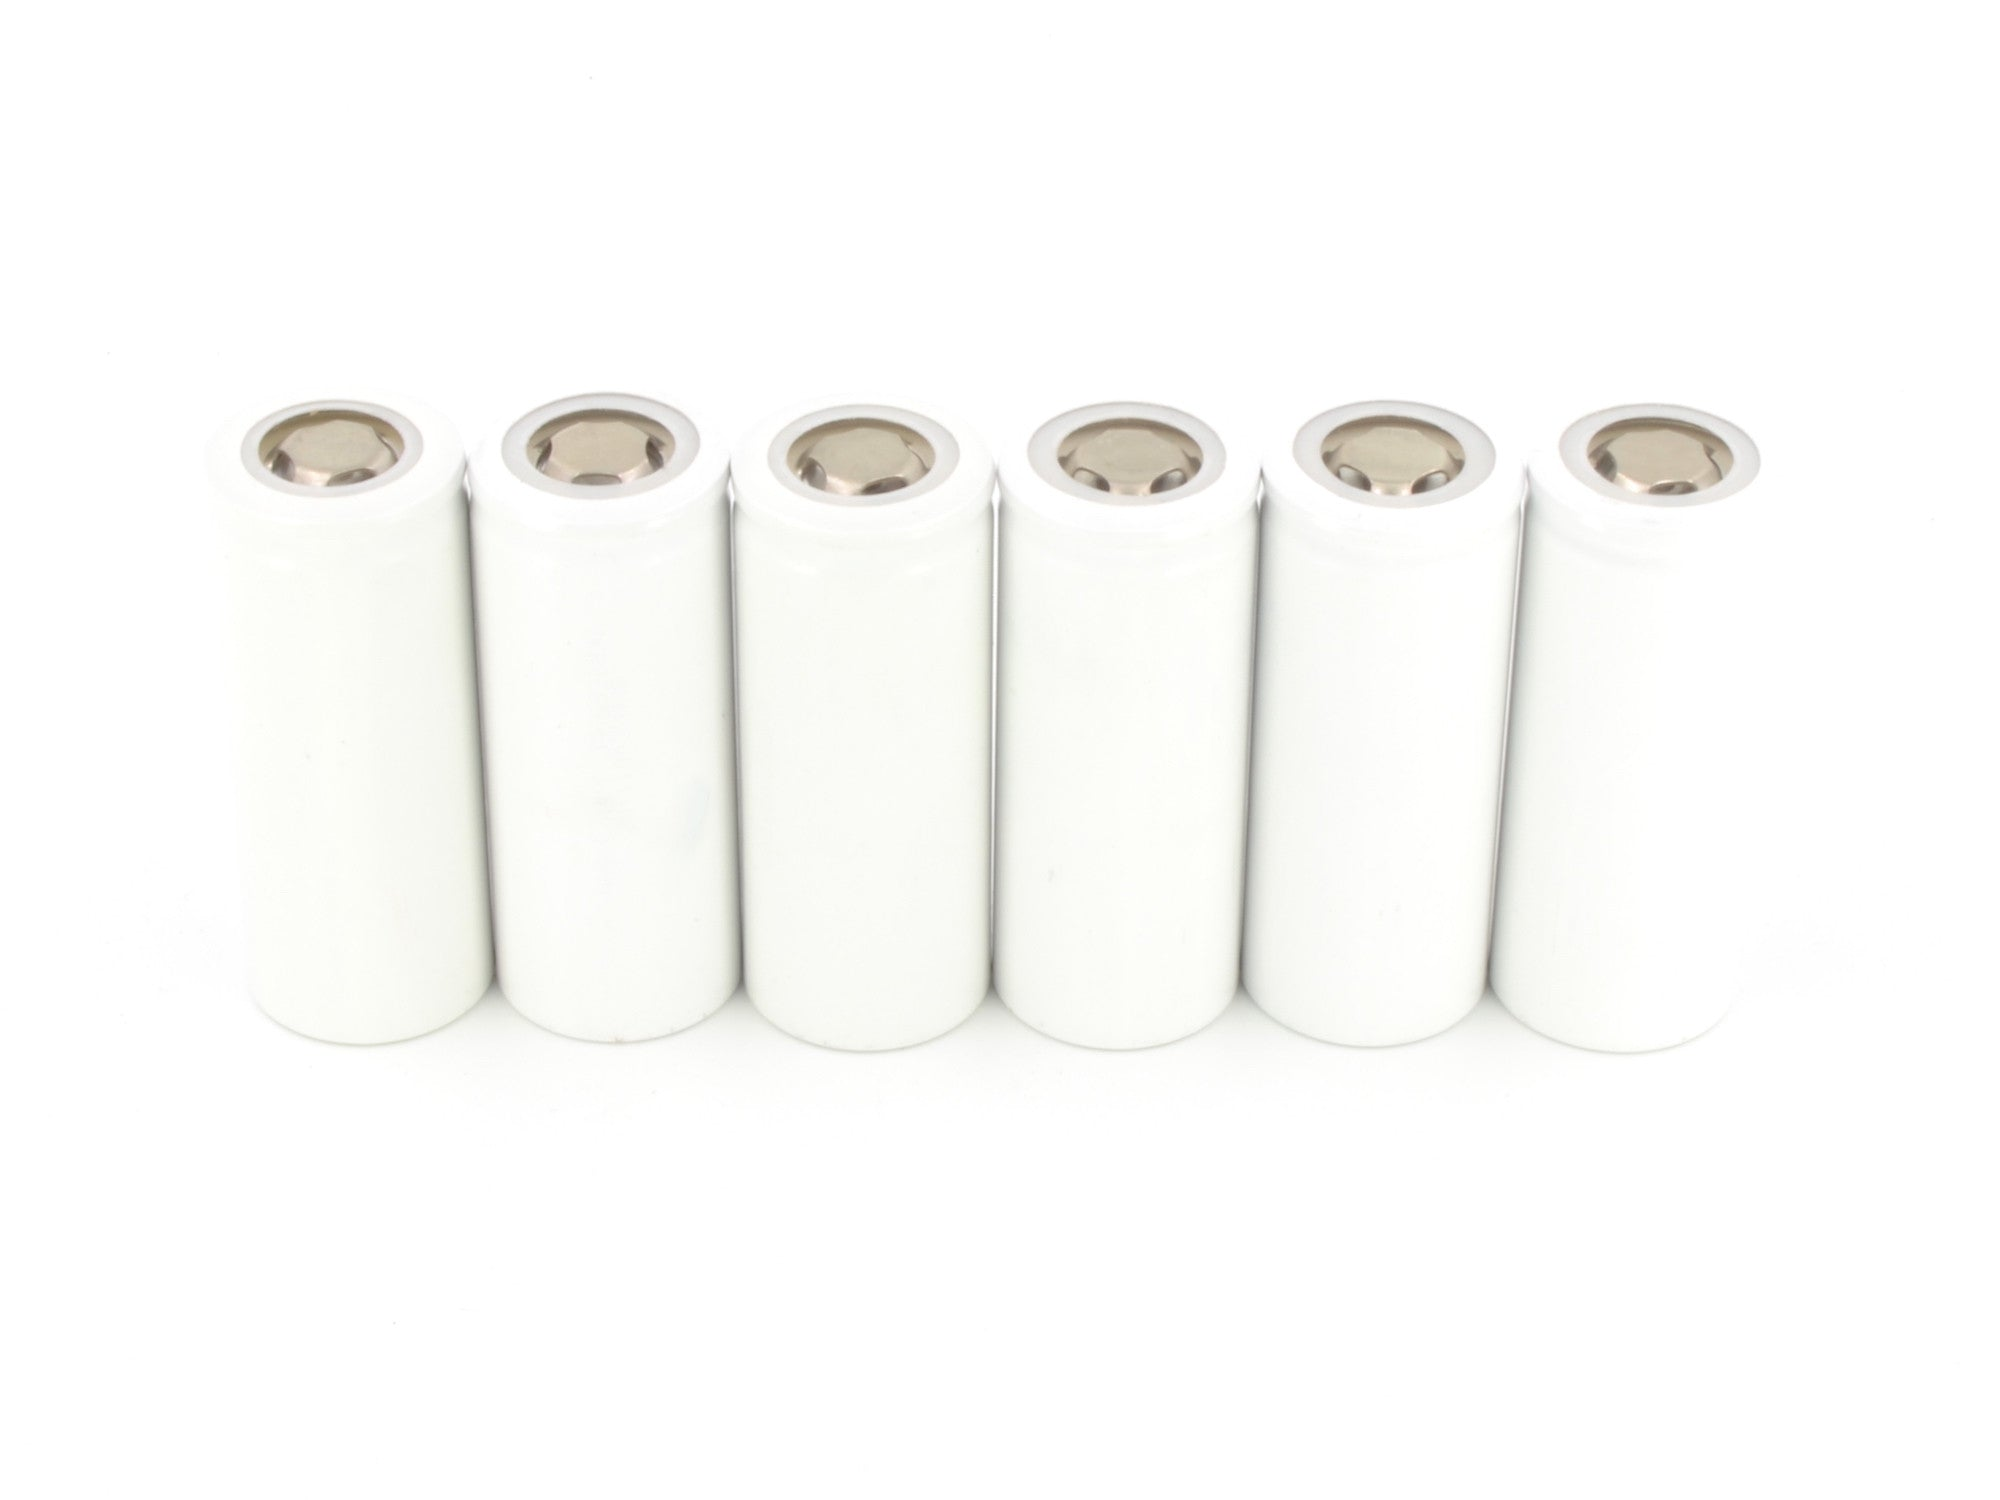 6 rechargeable Li-FePO4 batteries